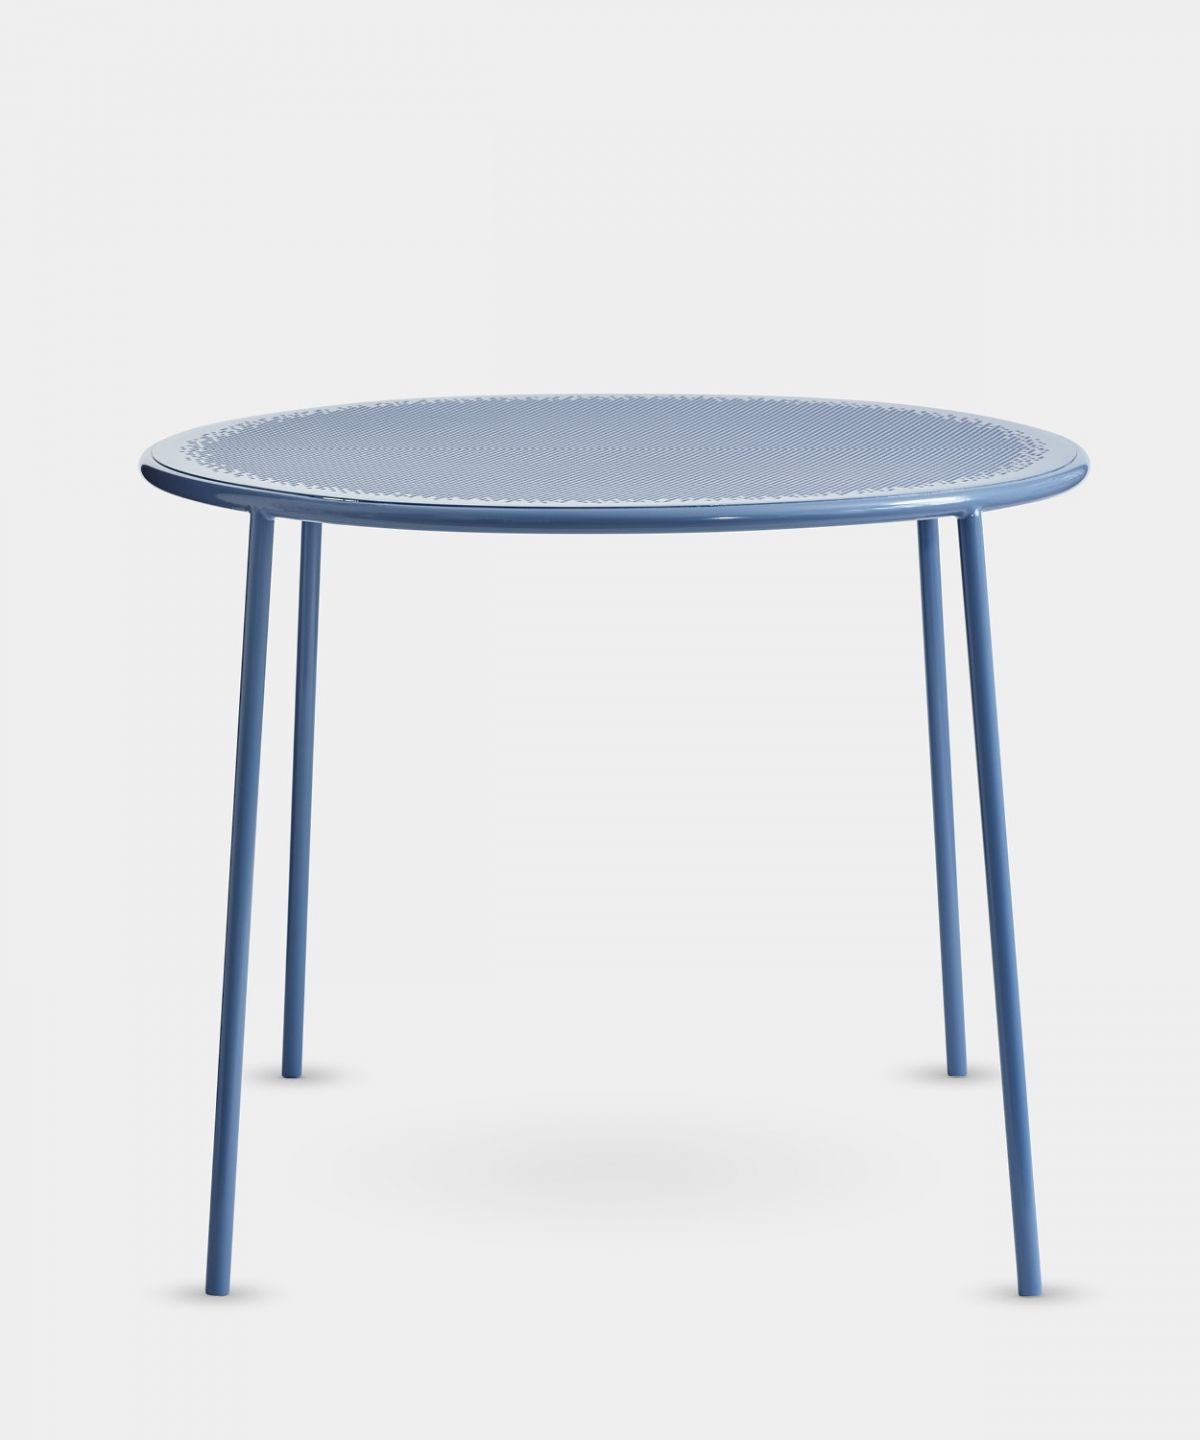 A minimalist metal table with a beautiful blue powder coated finish steel perforated top keeps the table feeling light airy dimma table by alexander